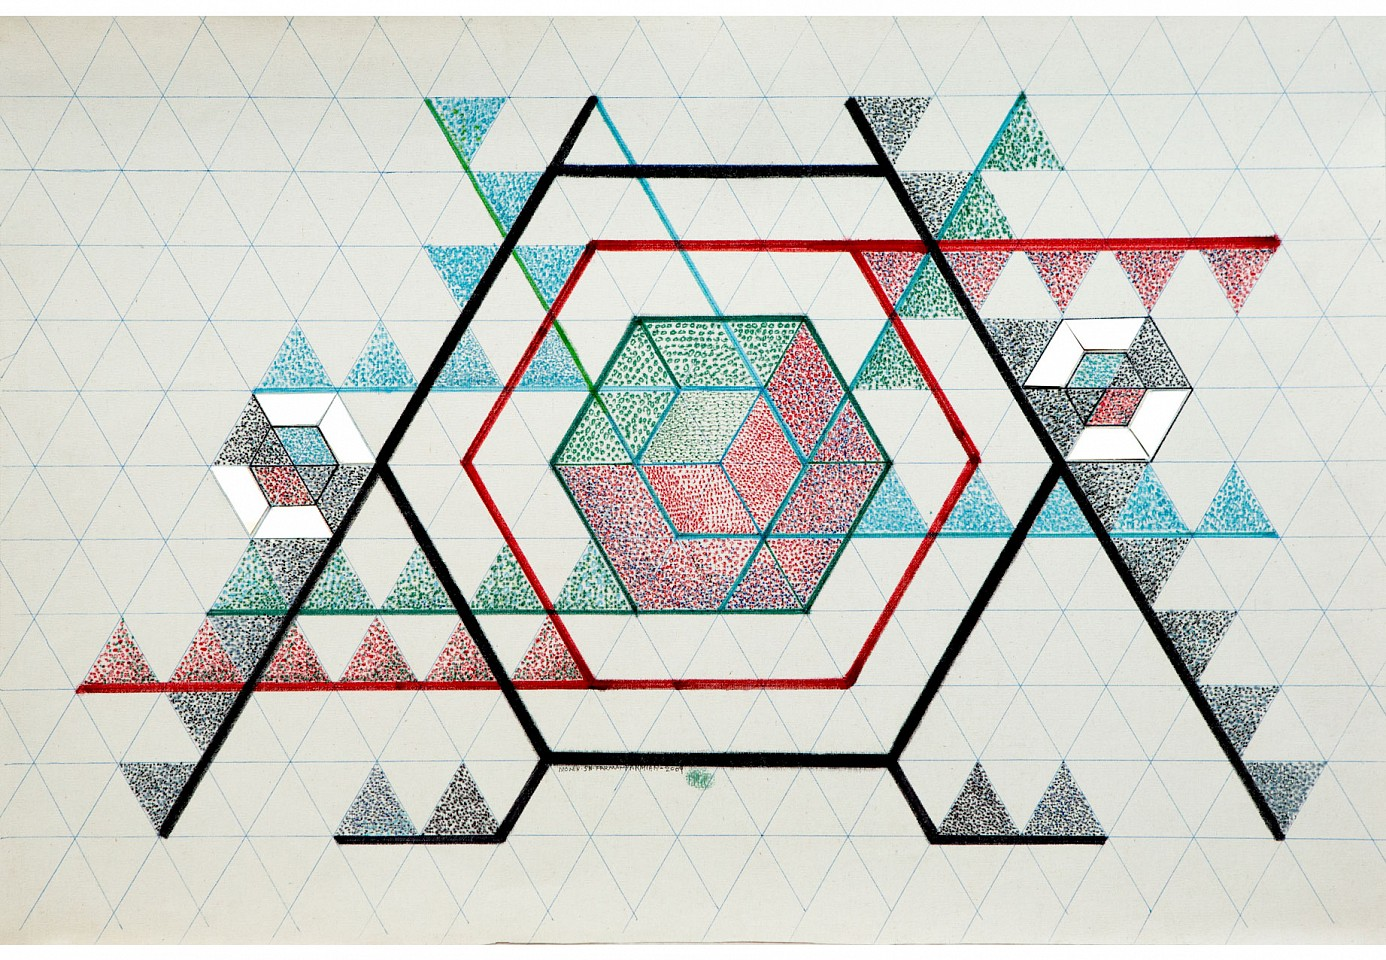 "<p><span class=""viewer-caption-artist"">Monir Farmanfarmaian</span></p> <p><span class=""viewer-caption-title""><i>Drawing 2</i></span>, <span class=""viewer-caption-year"">2009</span></p> <p><span class=""viewer-caption-media"">Felt marker, color pencil and mirror on paper</span></p> <p><span class=""viewer-caption-dimensions"">62 x 95 cm (24 3/8 x 37 3/8 in.)</span></p> <p><span class=""viewer-caption-inventory"">MOF0001</span></p> <p><span class=""viewer-caption-aux""></span></p>"